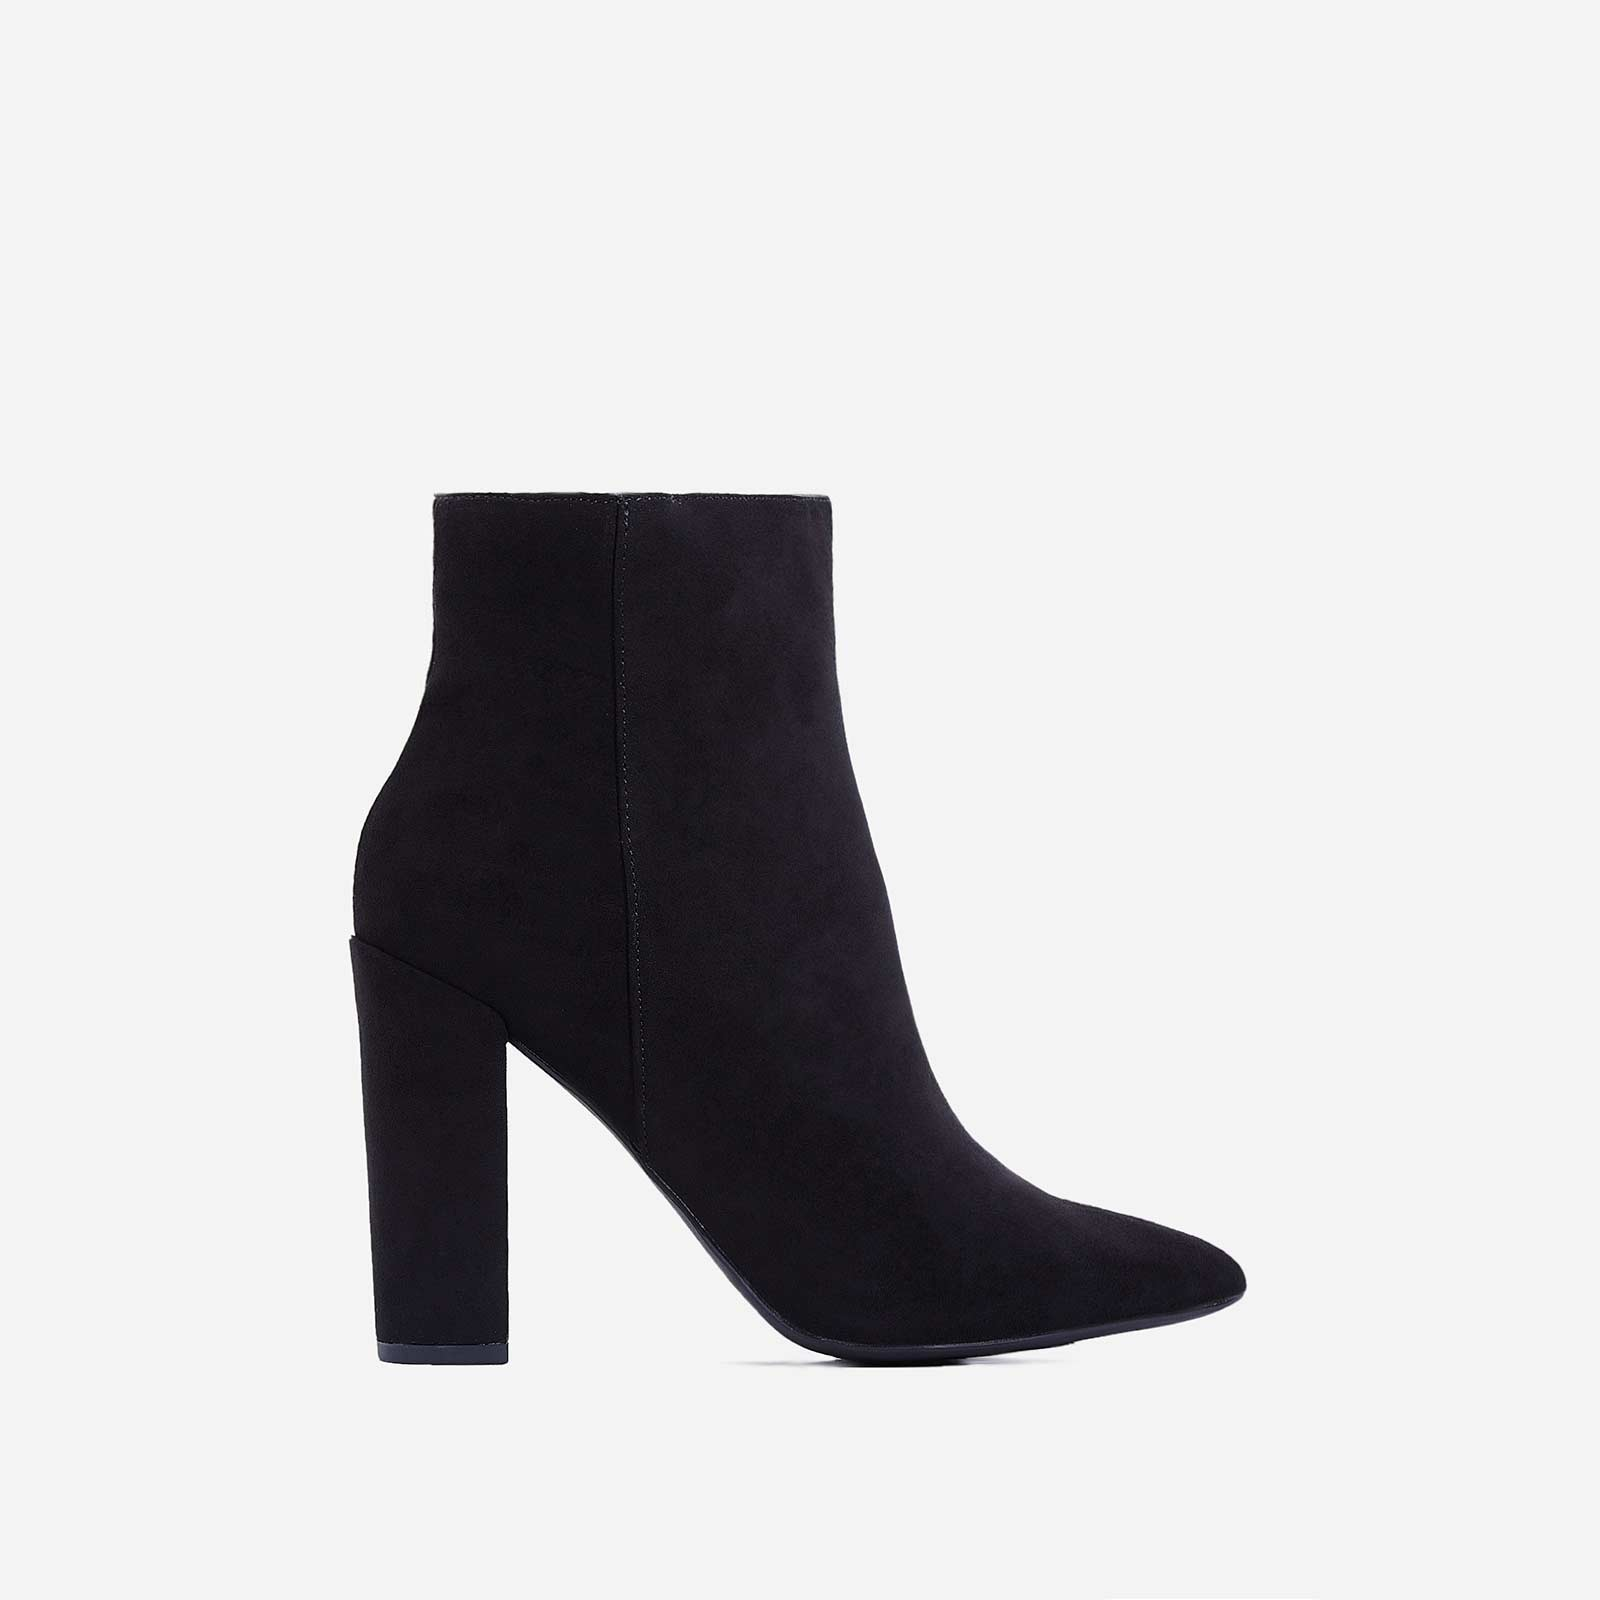 Diana Block Heel Ankle Boot In Black Faux Suede